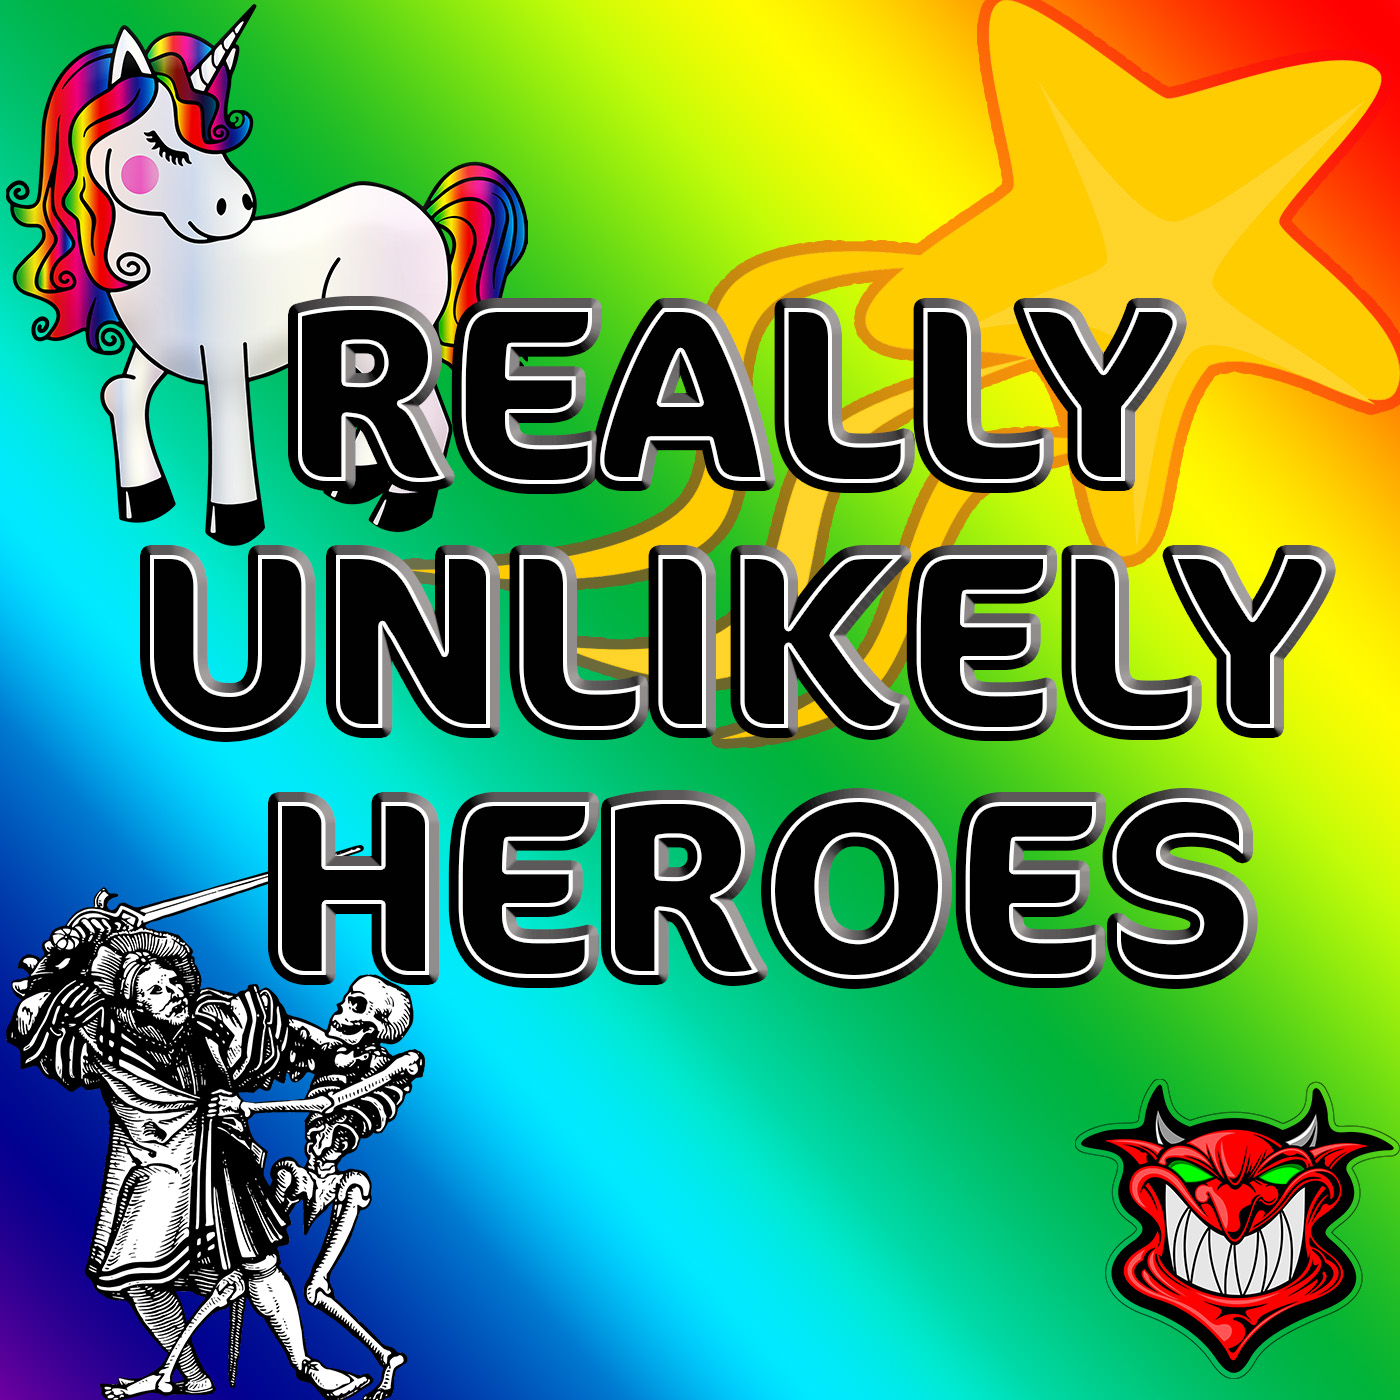 Really Unlikely Heroes - The story of 3 adventurers who have no idea what they are doing or if they can last long enough to actually accomplish anything.